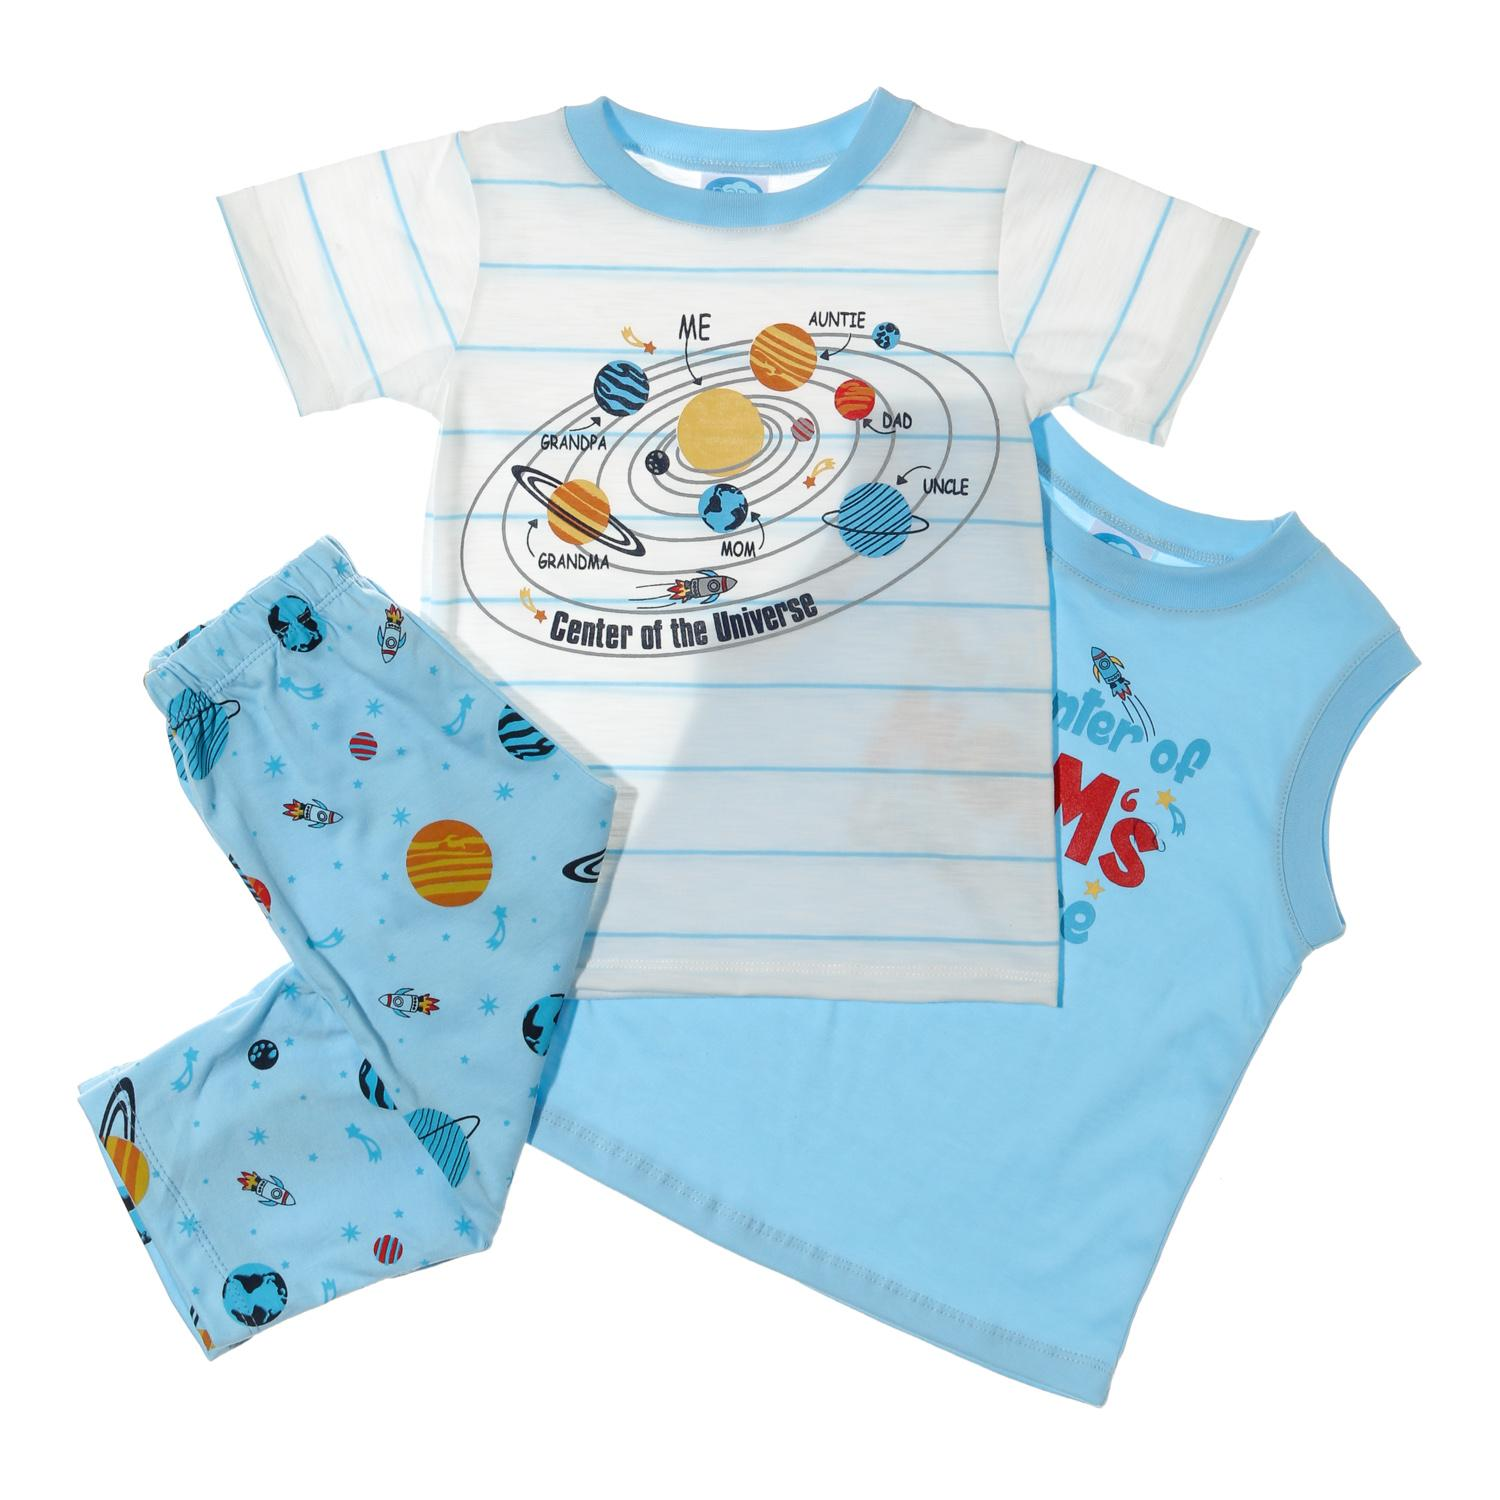 73bdb08c Baby Clothes for sale - Baby Clothing Online Deals & Prices in ...